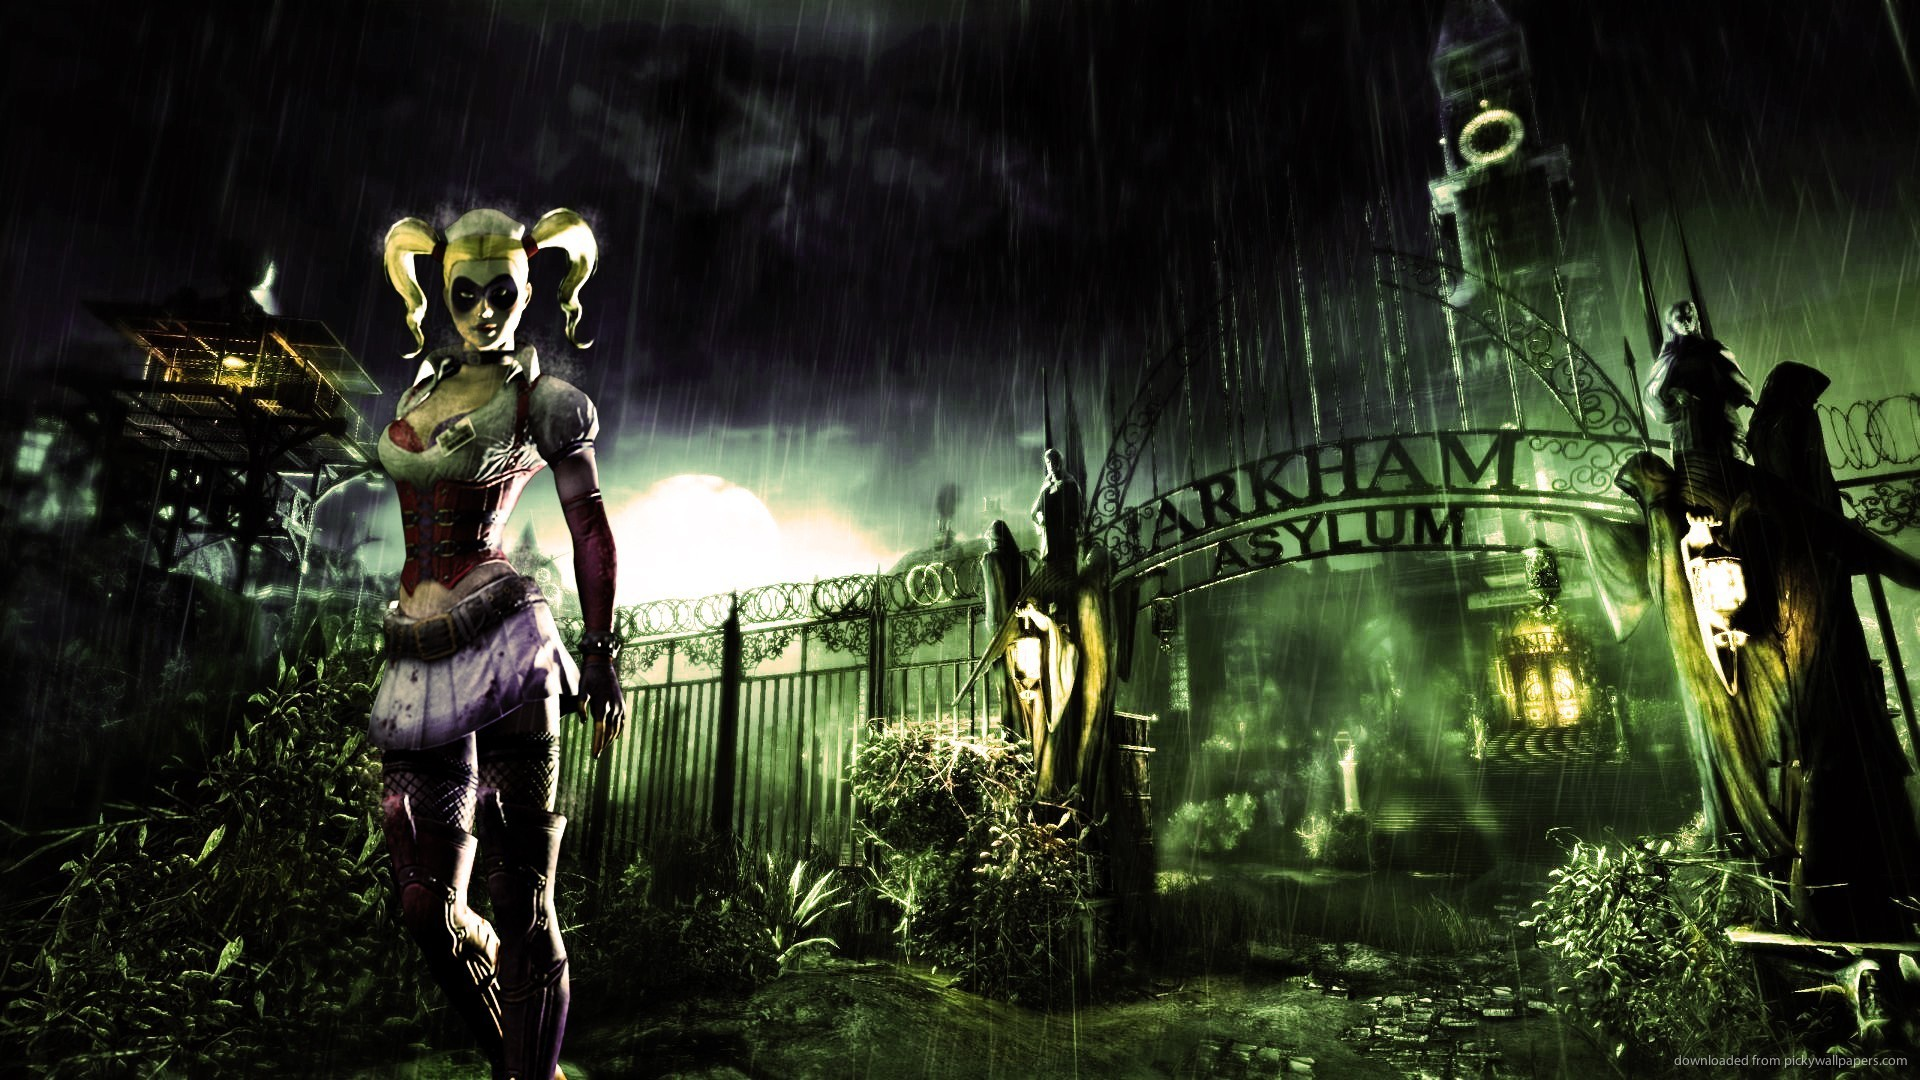 1920x1080 Harley Quinn In Batman Arkham Asylum Wallpaper 1920x1080